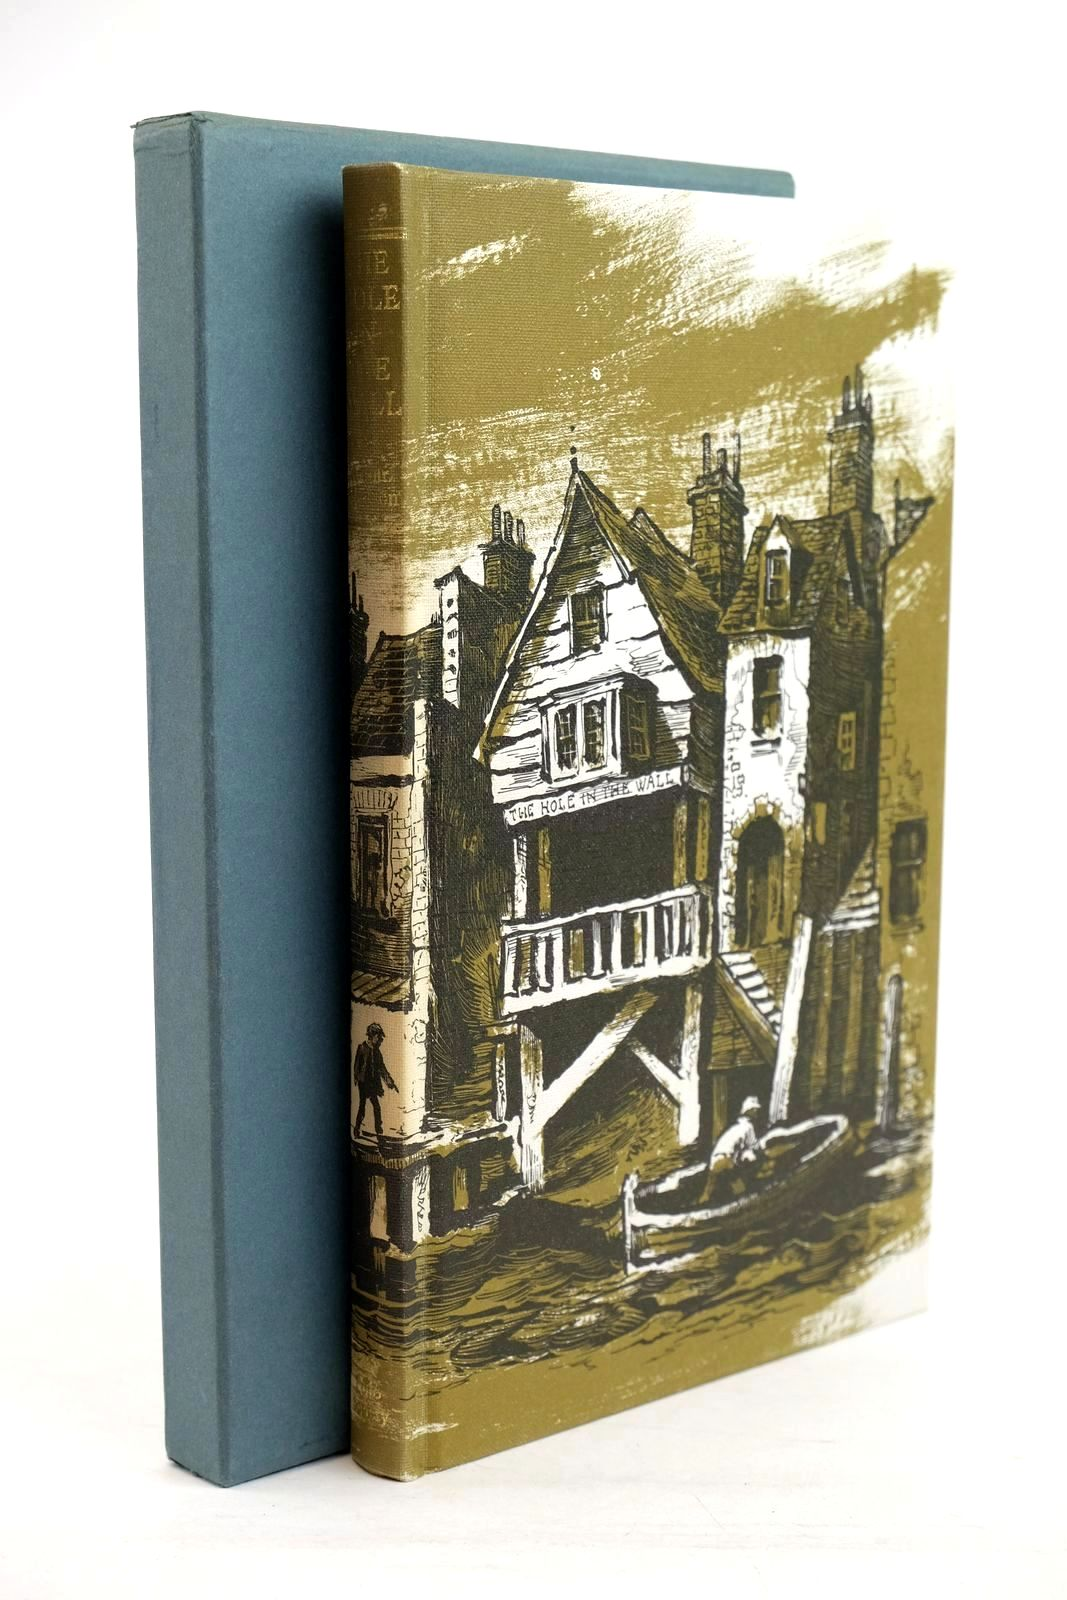 Photo of THE HOLE IN THE WALL written by Morrison, Arthur illustrated by Biro, Val published by Folio Society (STOCK CODE: 1320412)  for sale by Stella & Rose's Books